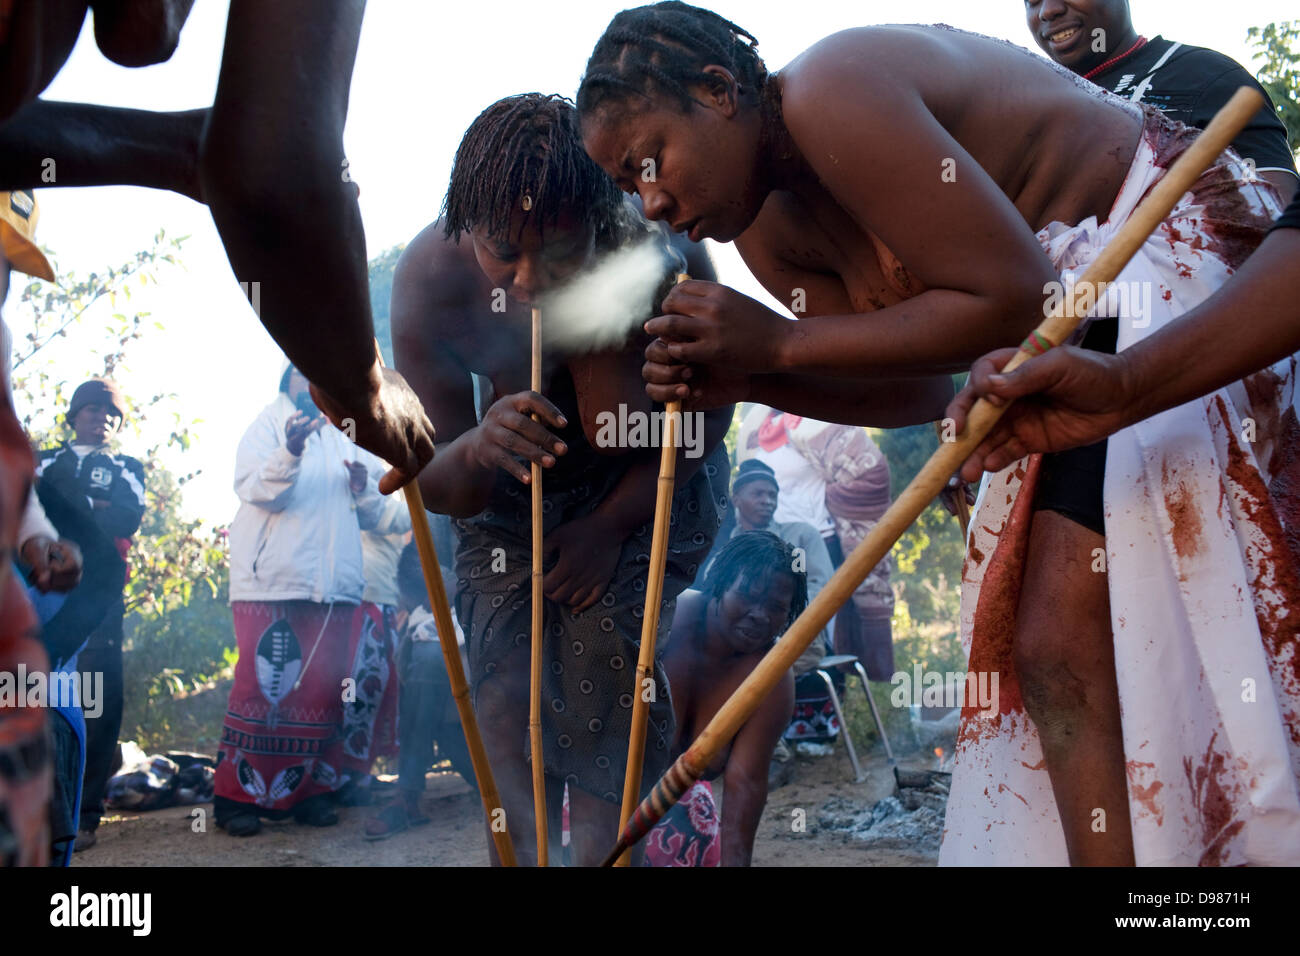 Inhale Smoke Stock Photos & Inhale Smoke Stock Images - Alamy